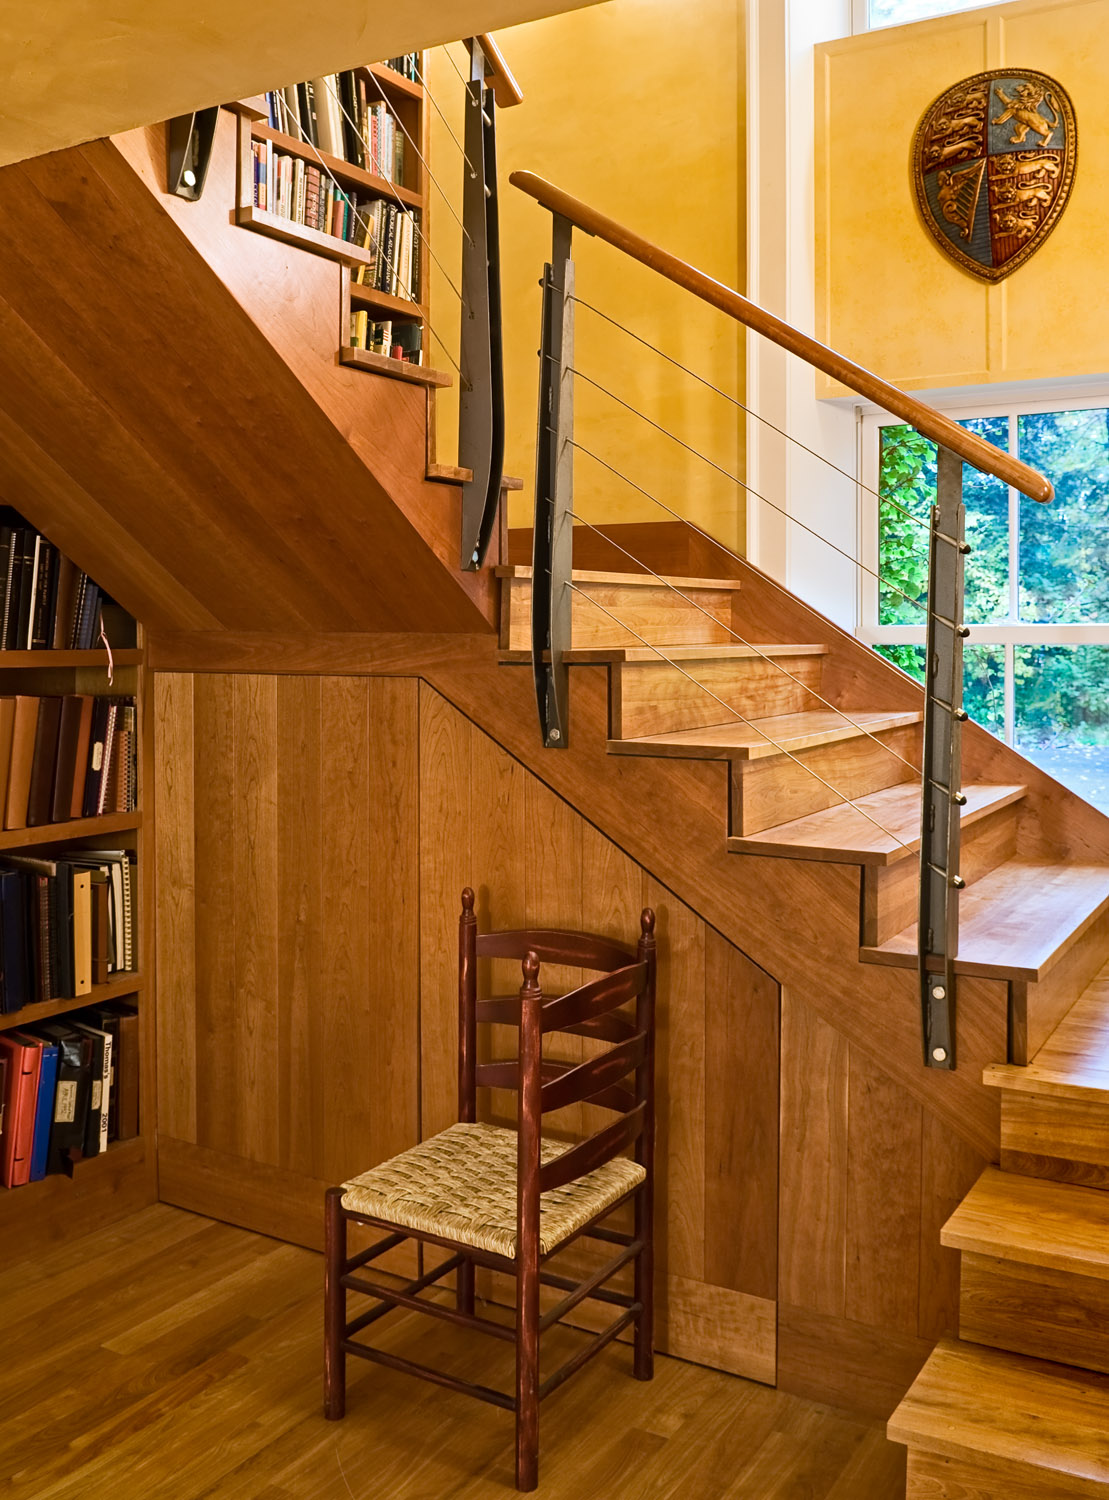 11 Wood stairs overall.jpg